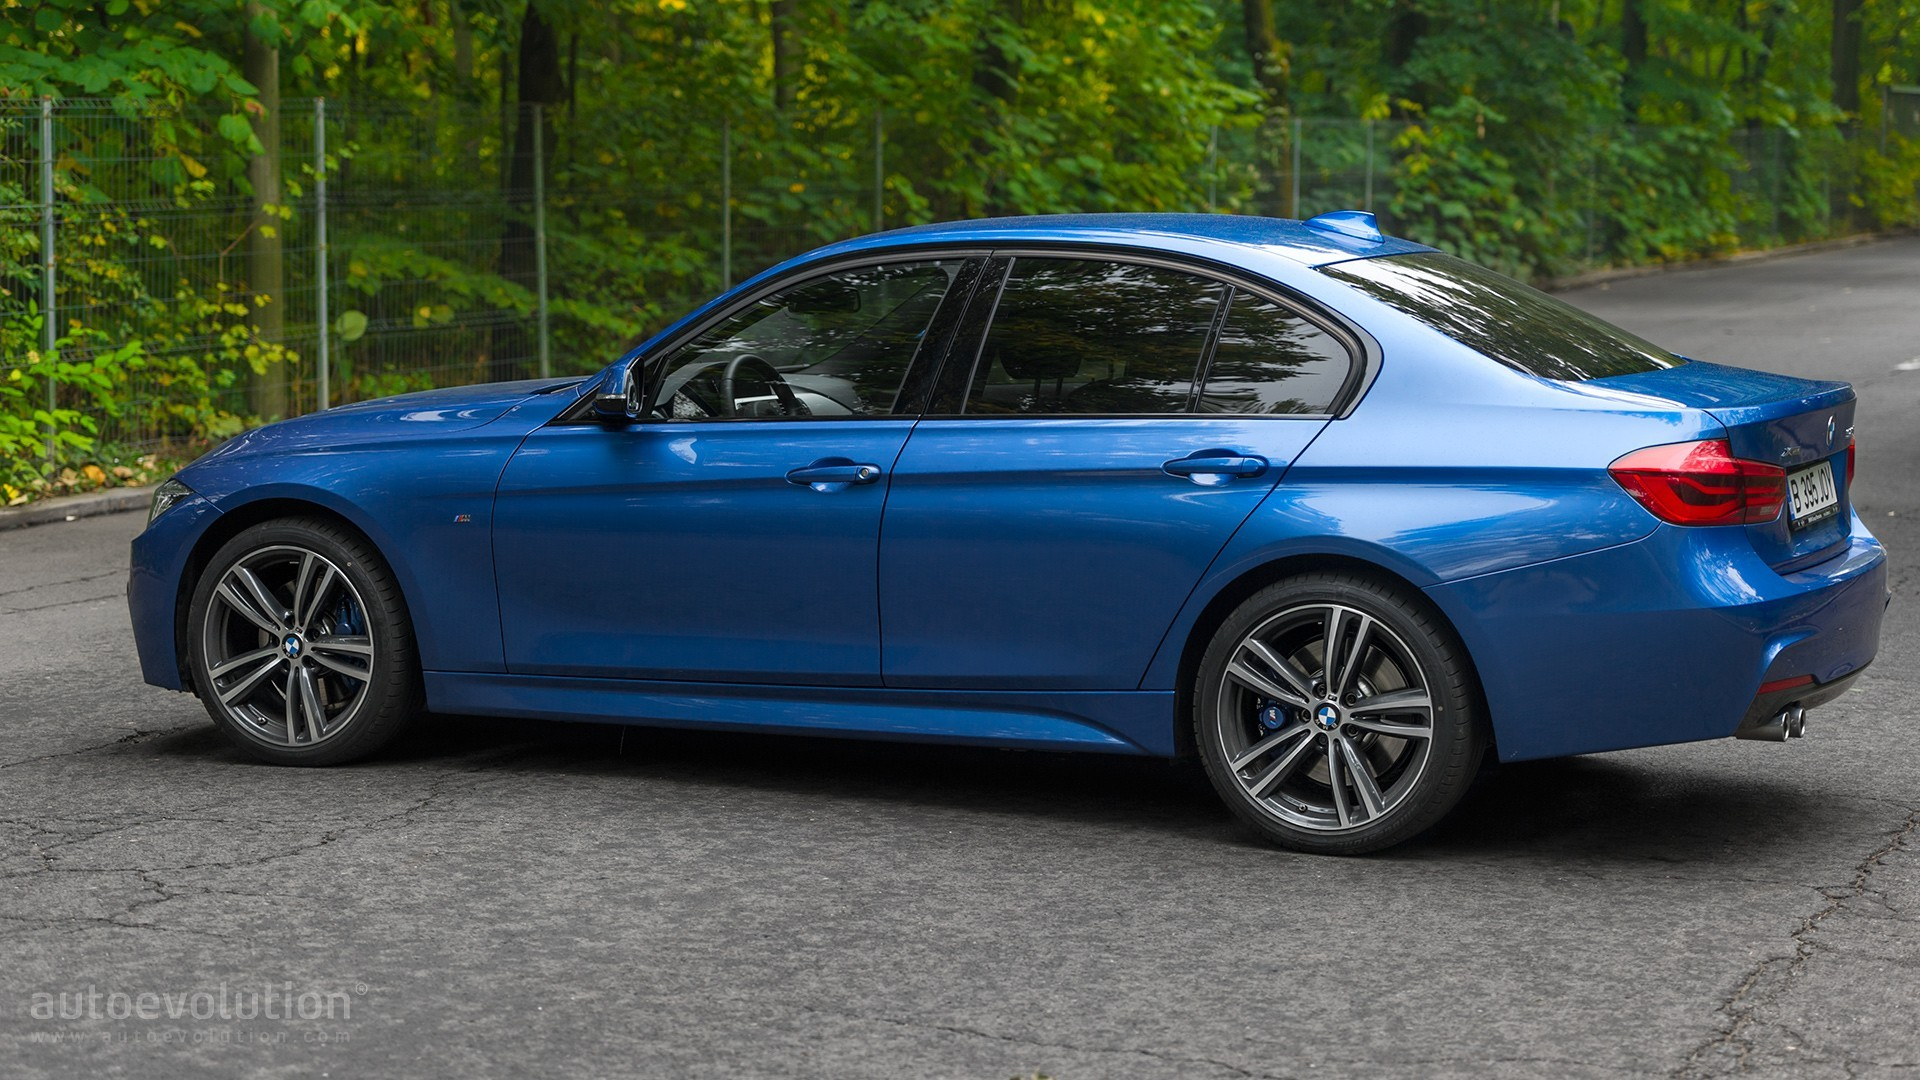 We Hear 2018 Bmw 3 Series To Use Water Injection And